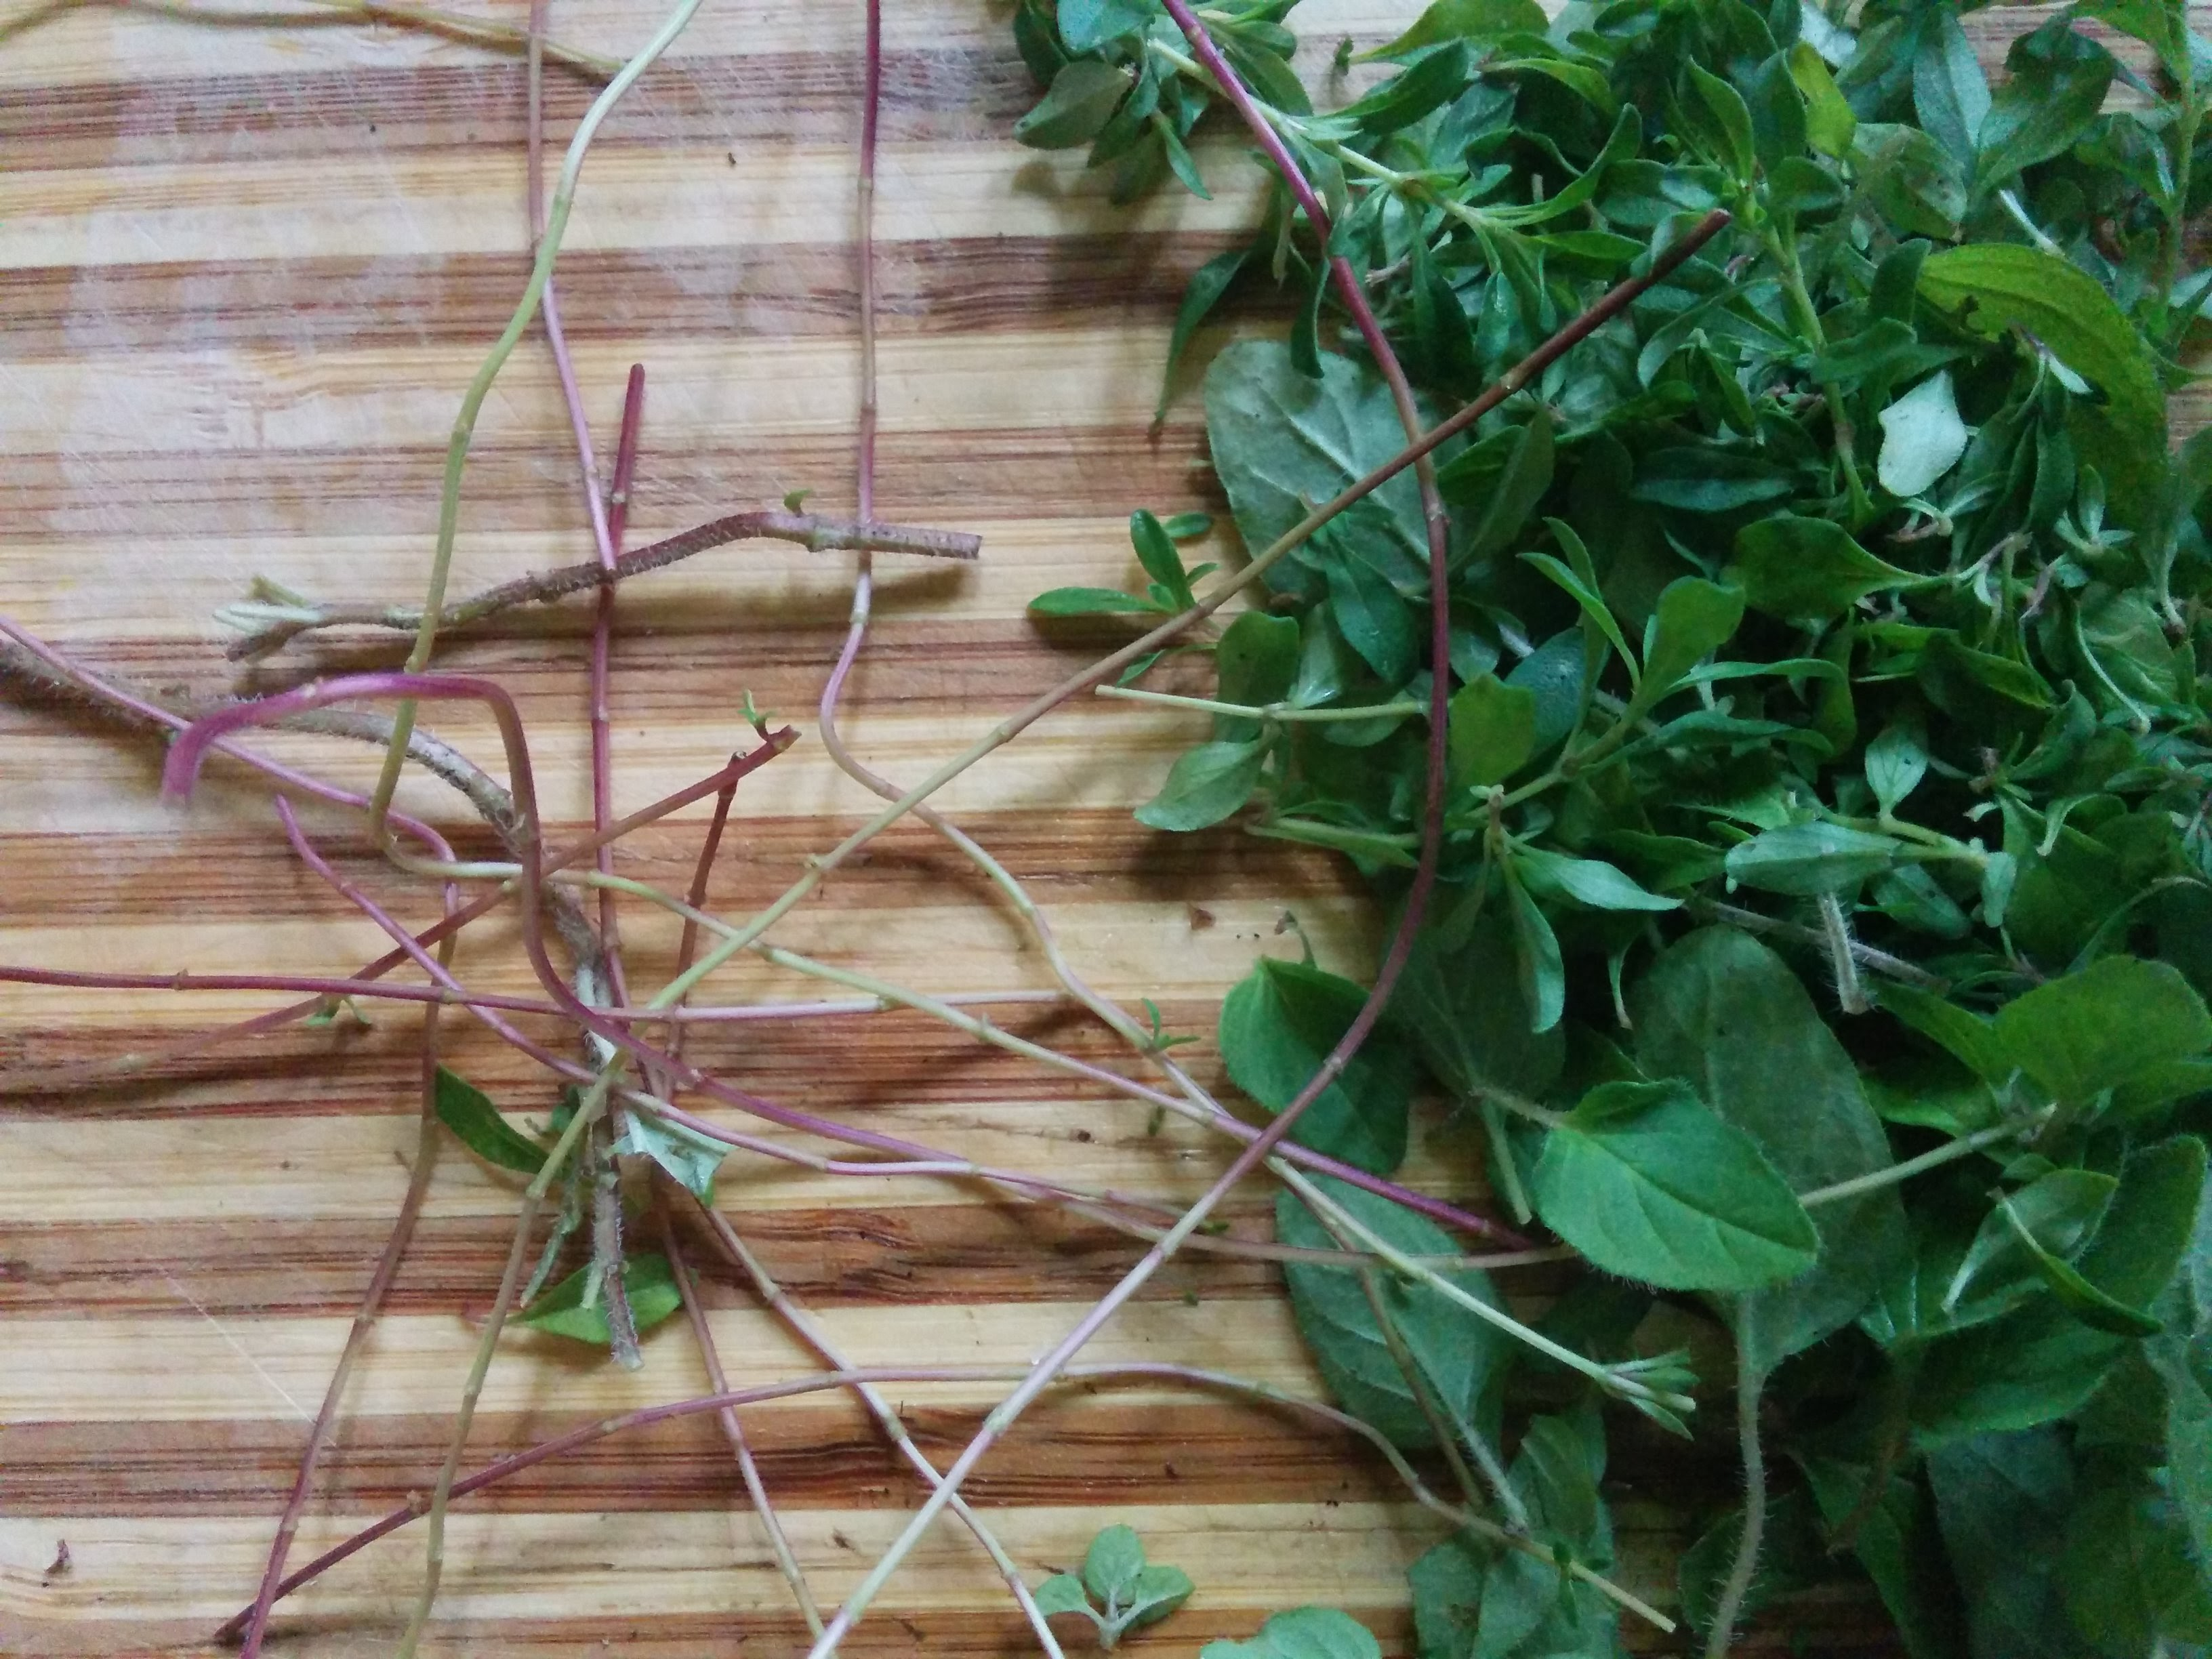 Herbs Strpped From Stems